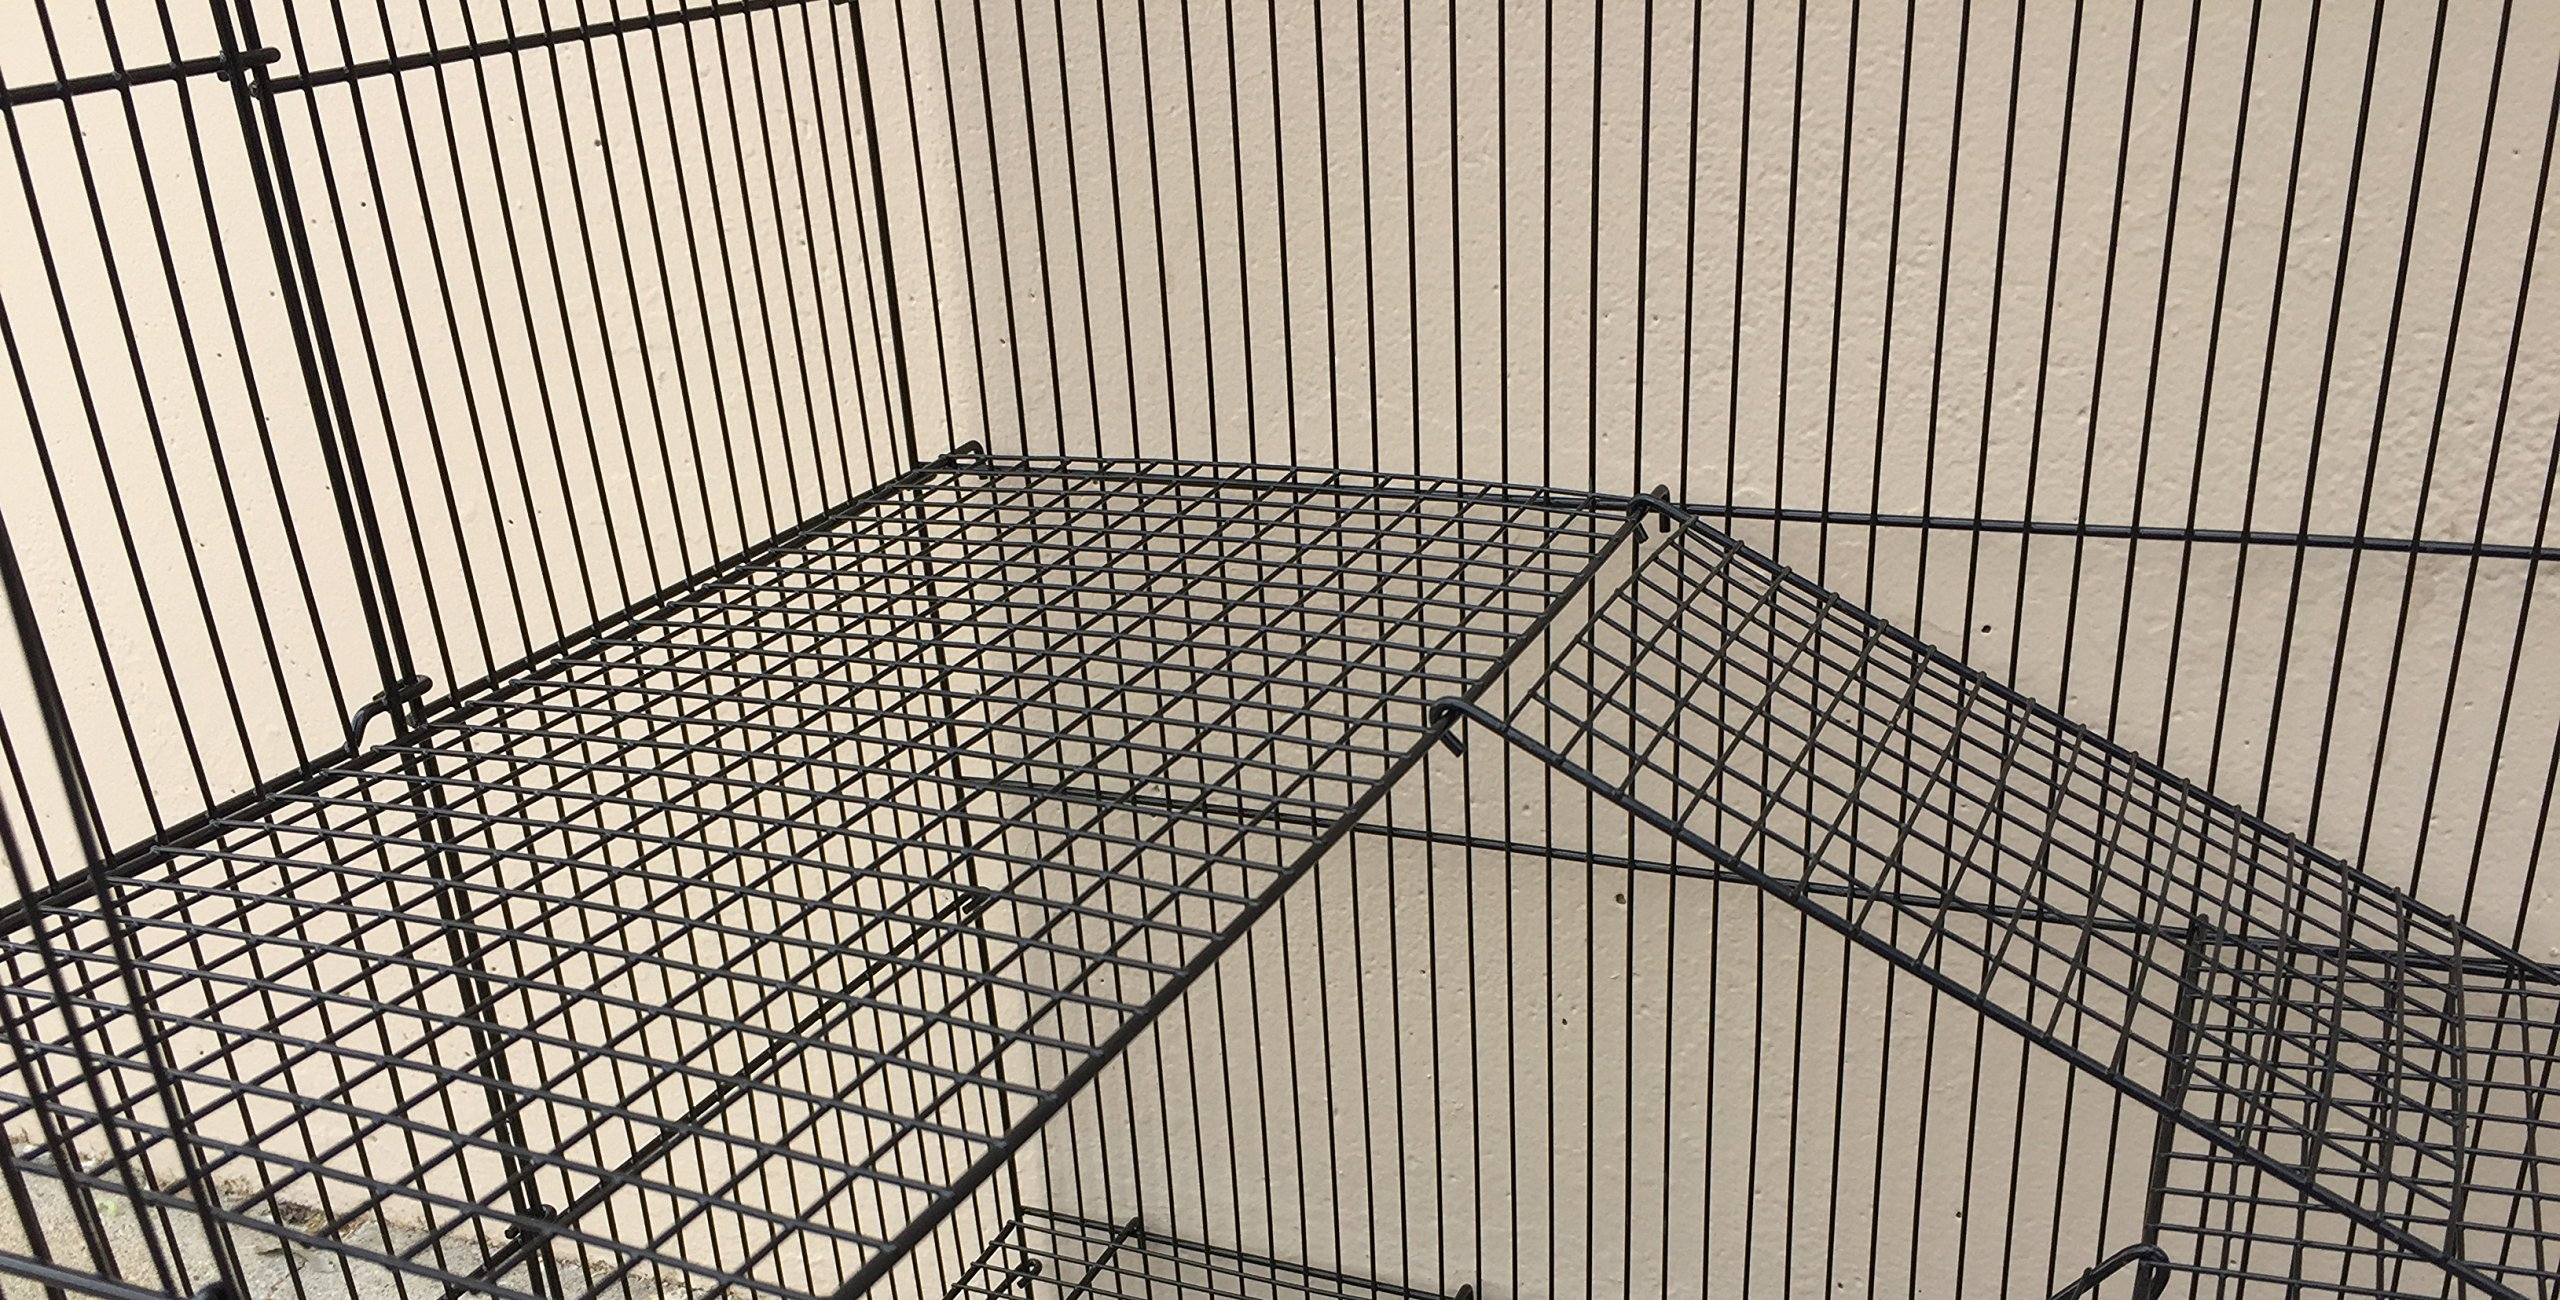 New Medium 3 Levels Ferret Chinchilla Sugar Glider Cage 24'' Length x 16'' Depth x 24'' Height by Mcage (Image #2)